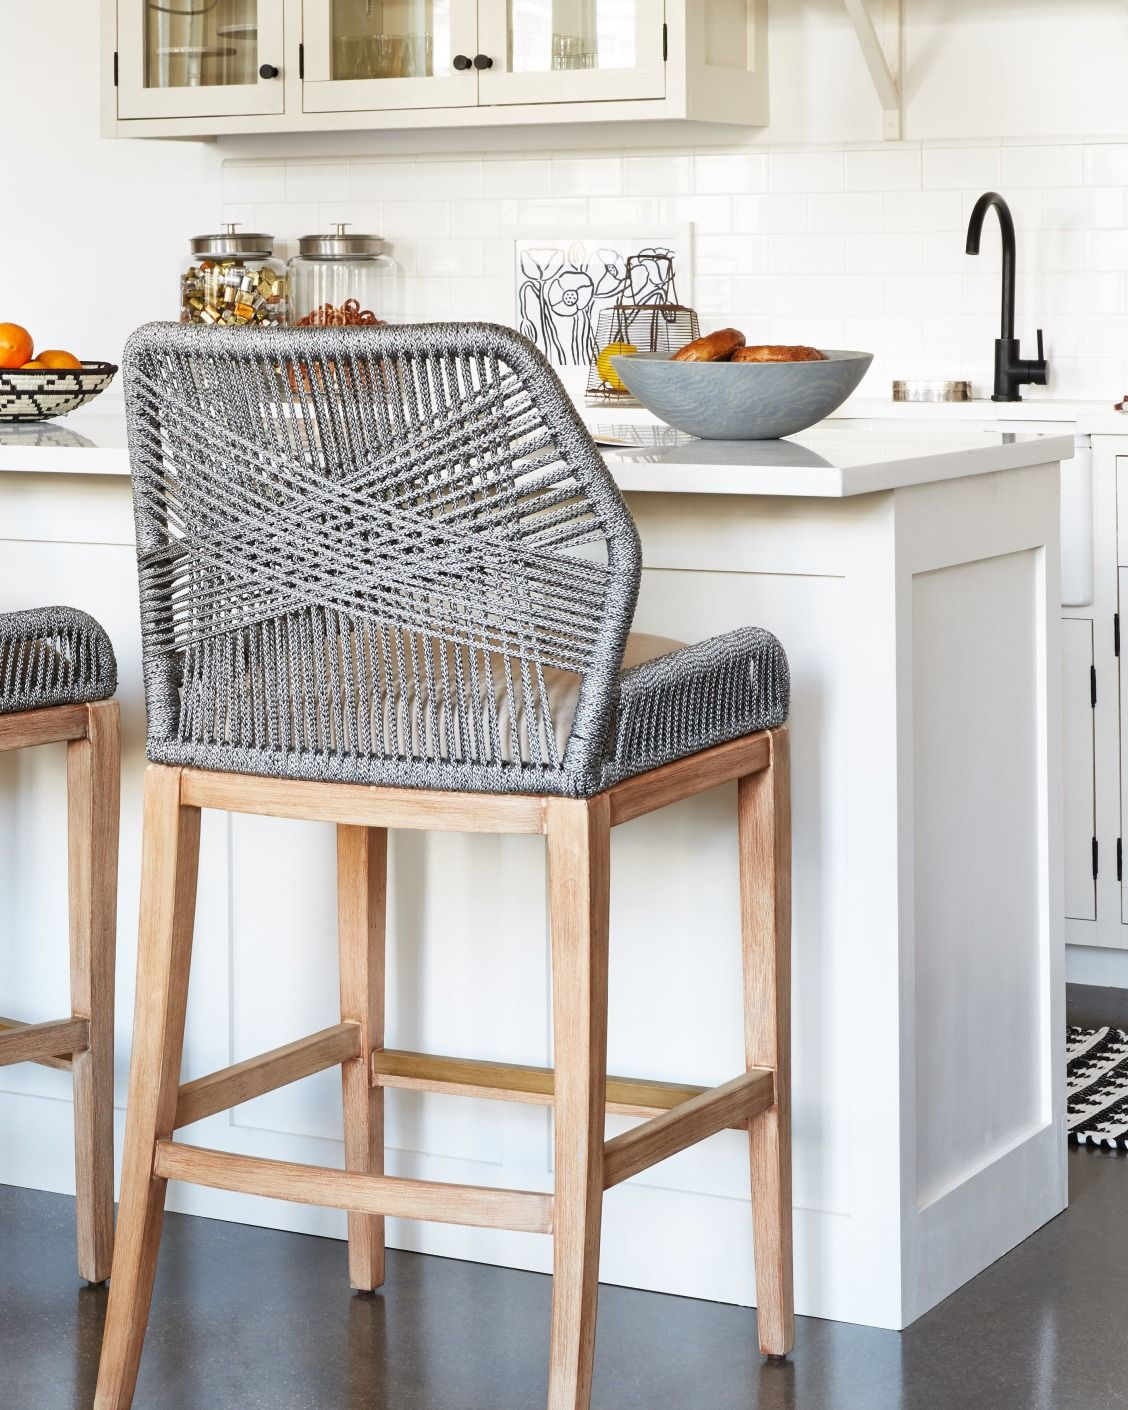 These Woven Rope Counter Stools Are Such A Fun, Unexpected Kitchen Accent!